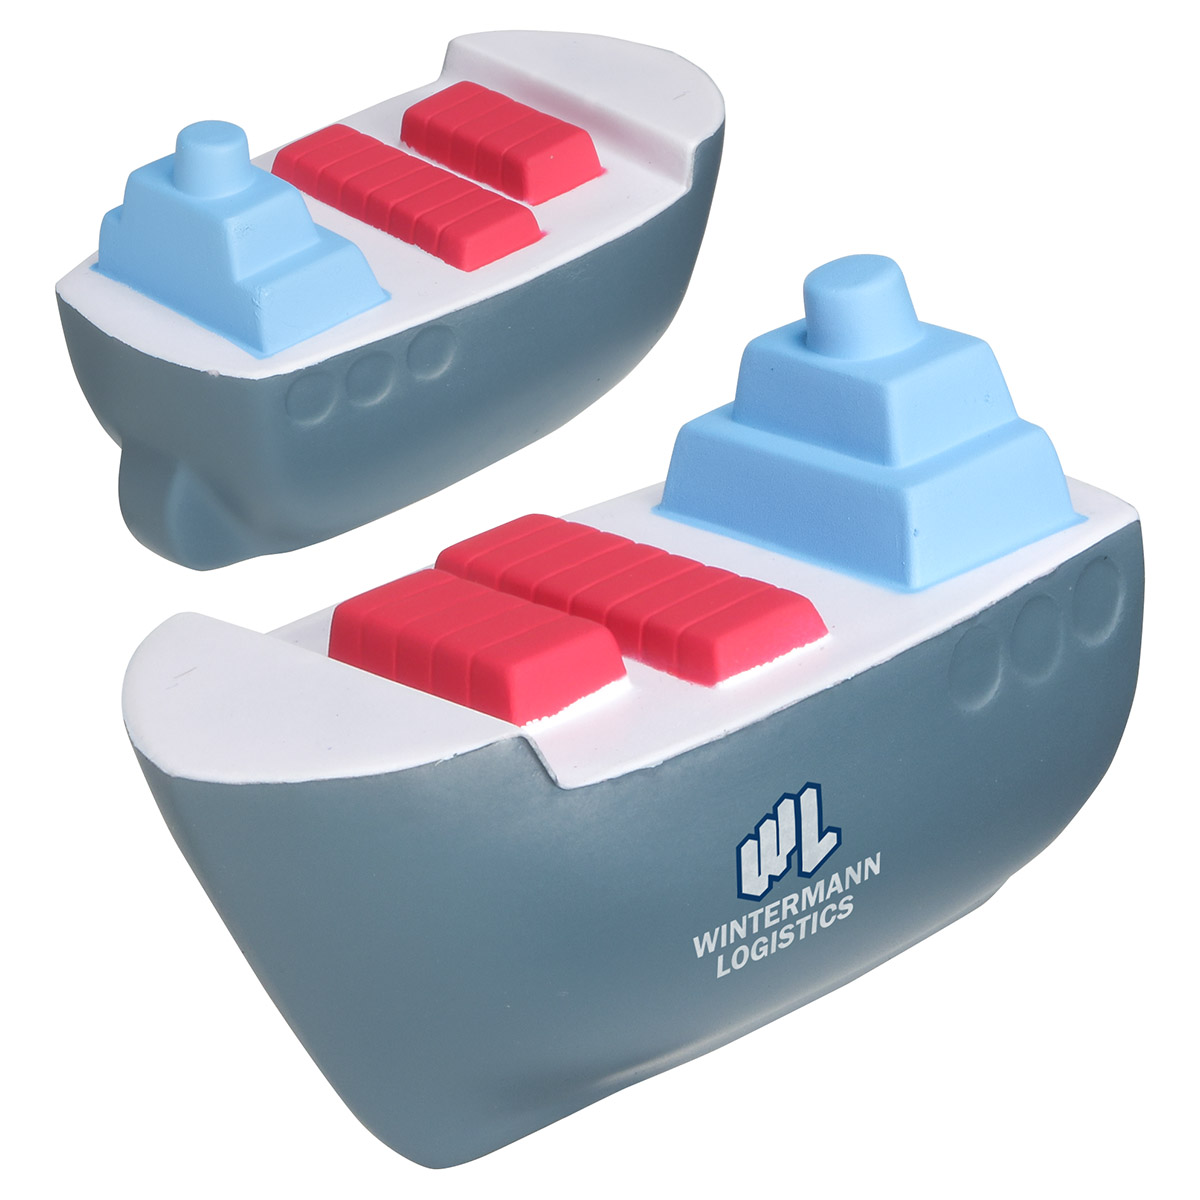 Cargo Boat Stress Reliever, LTR-CA02, 1 Colour Imprint